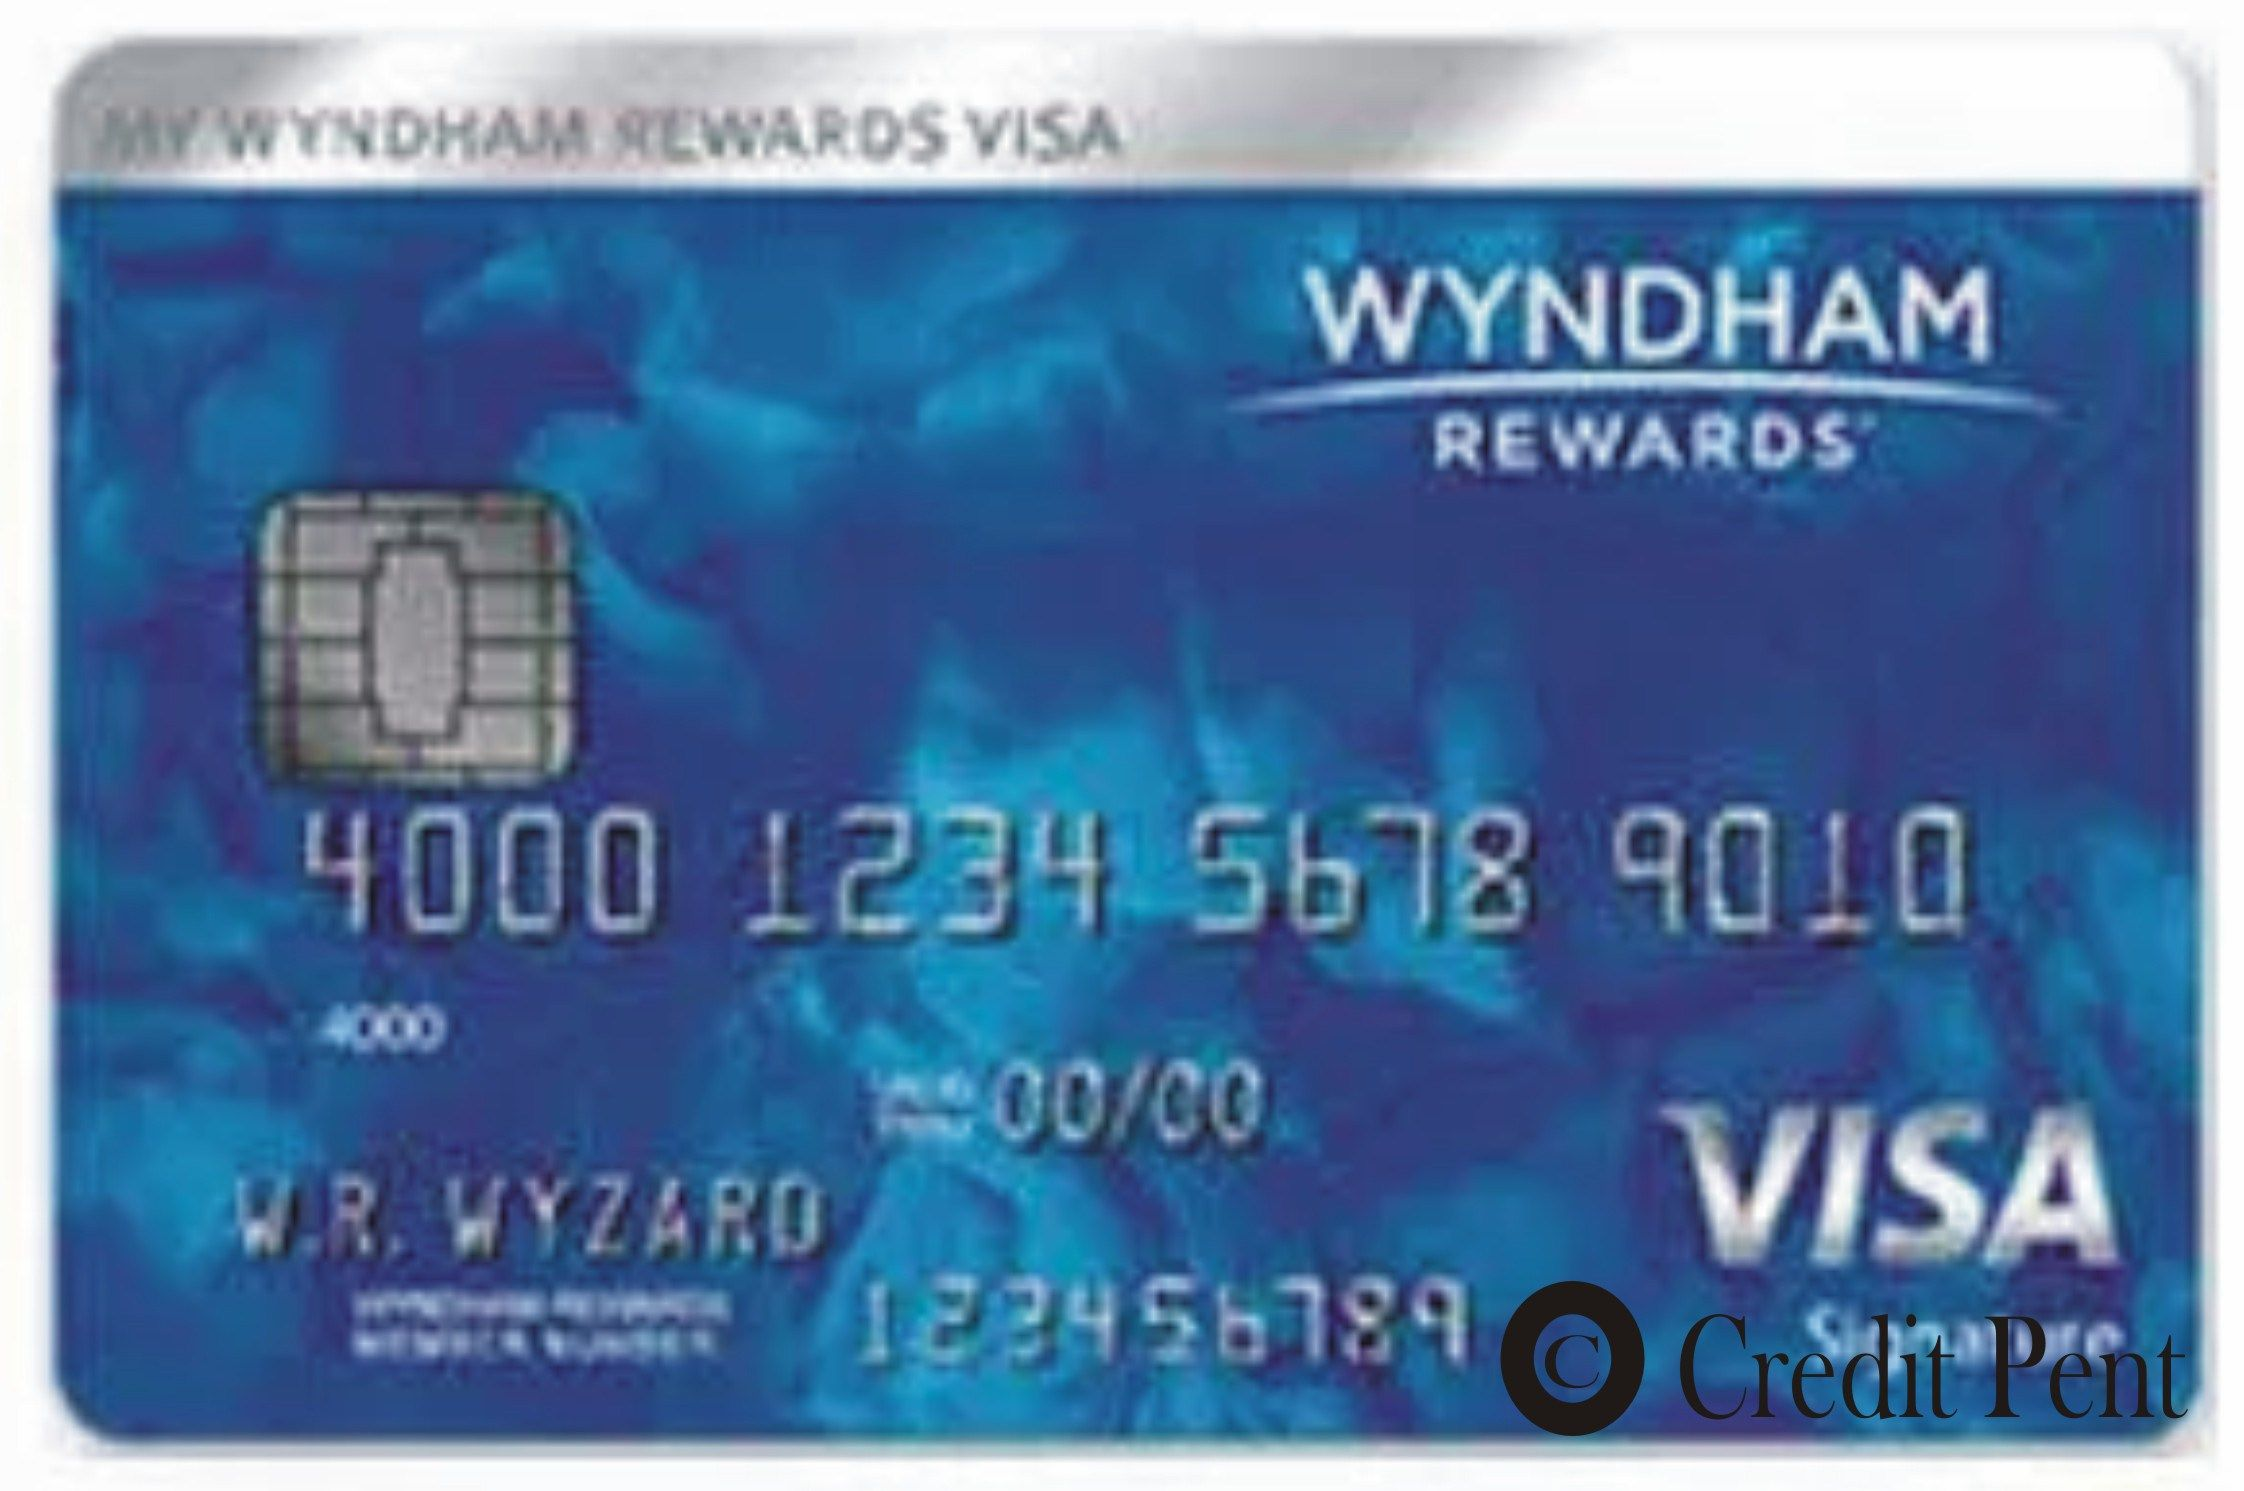 cc52725cb92df98ece26e7ff26cee939 - Barclays Bank Credit Card Online Application